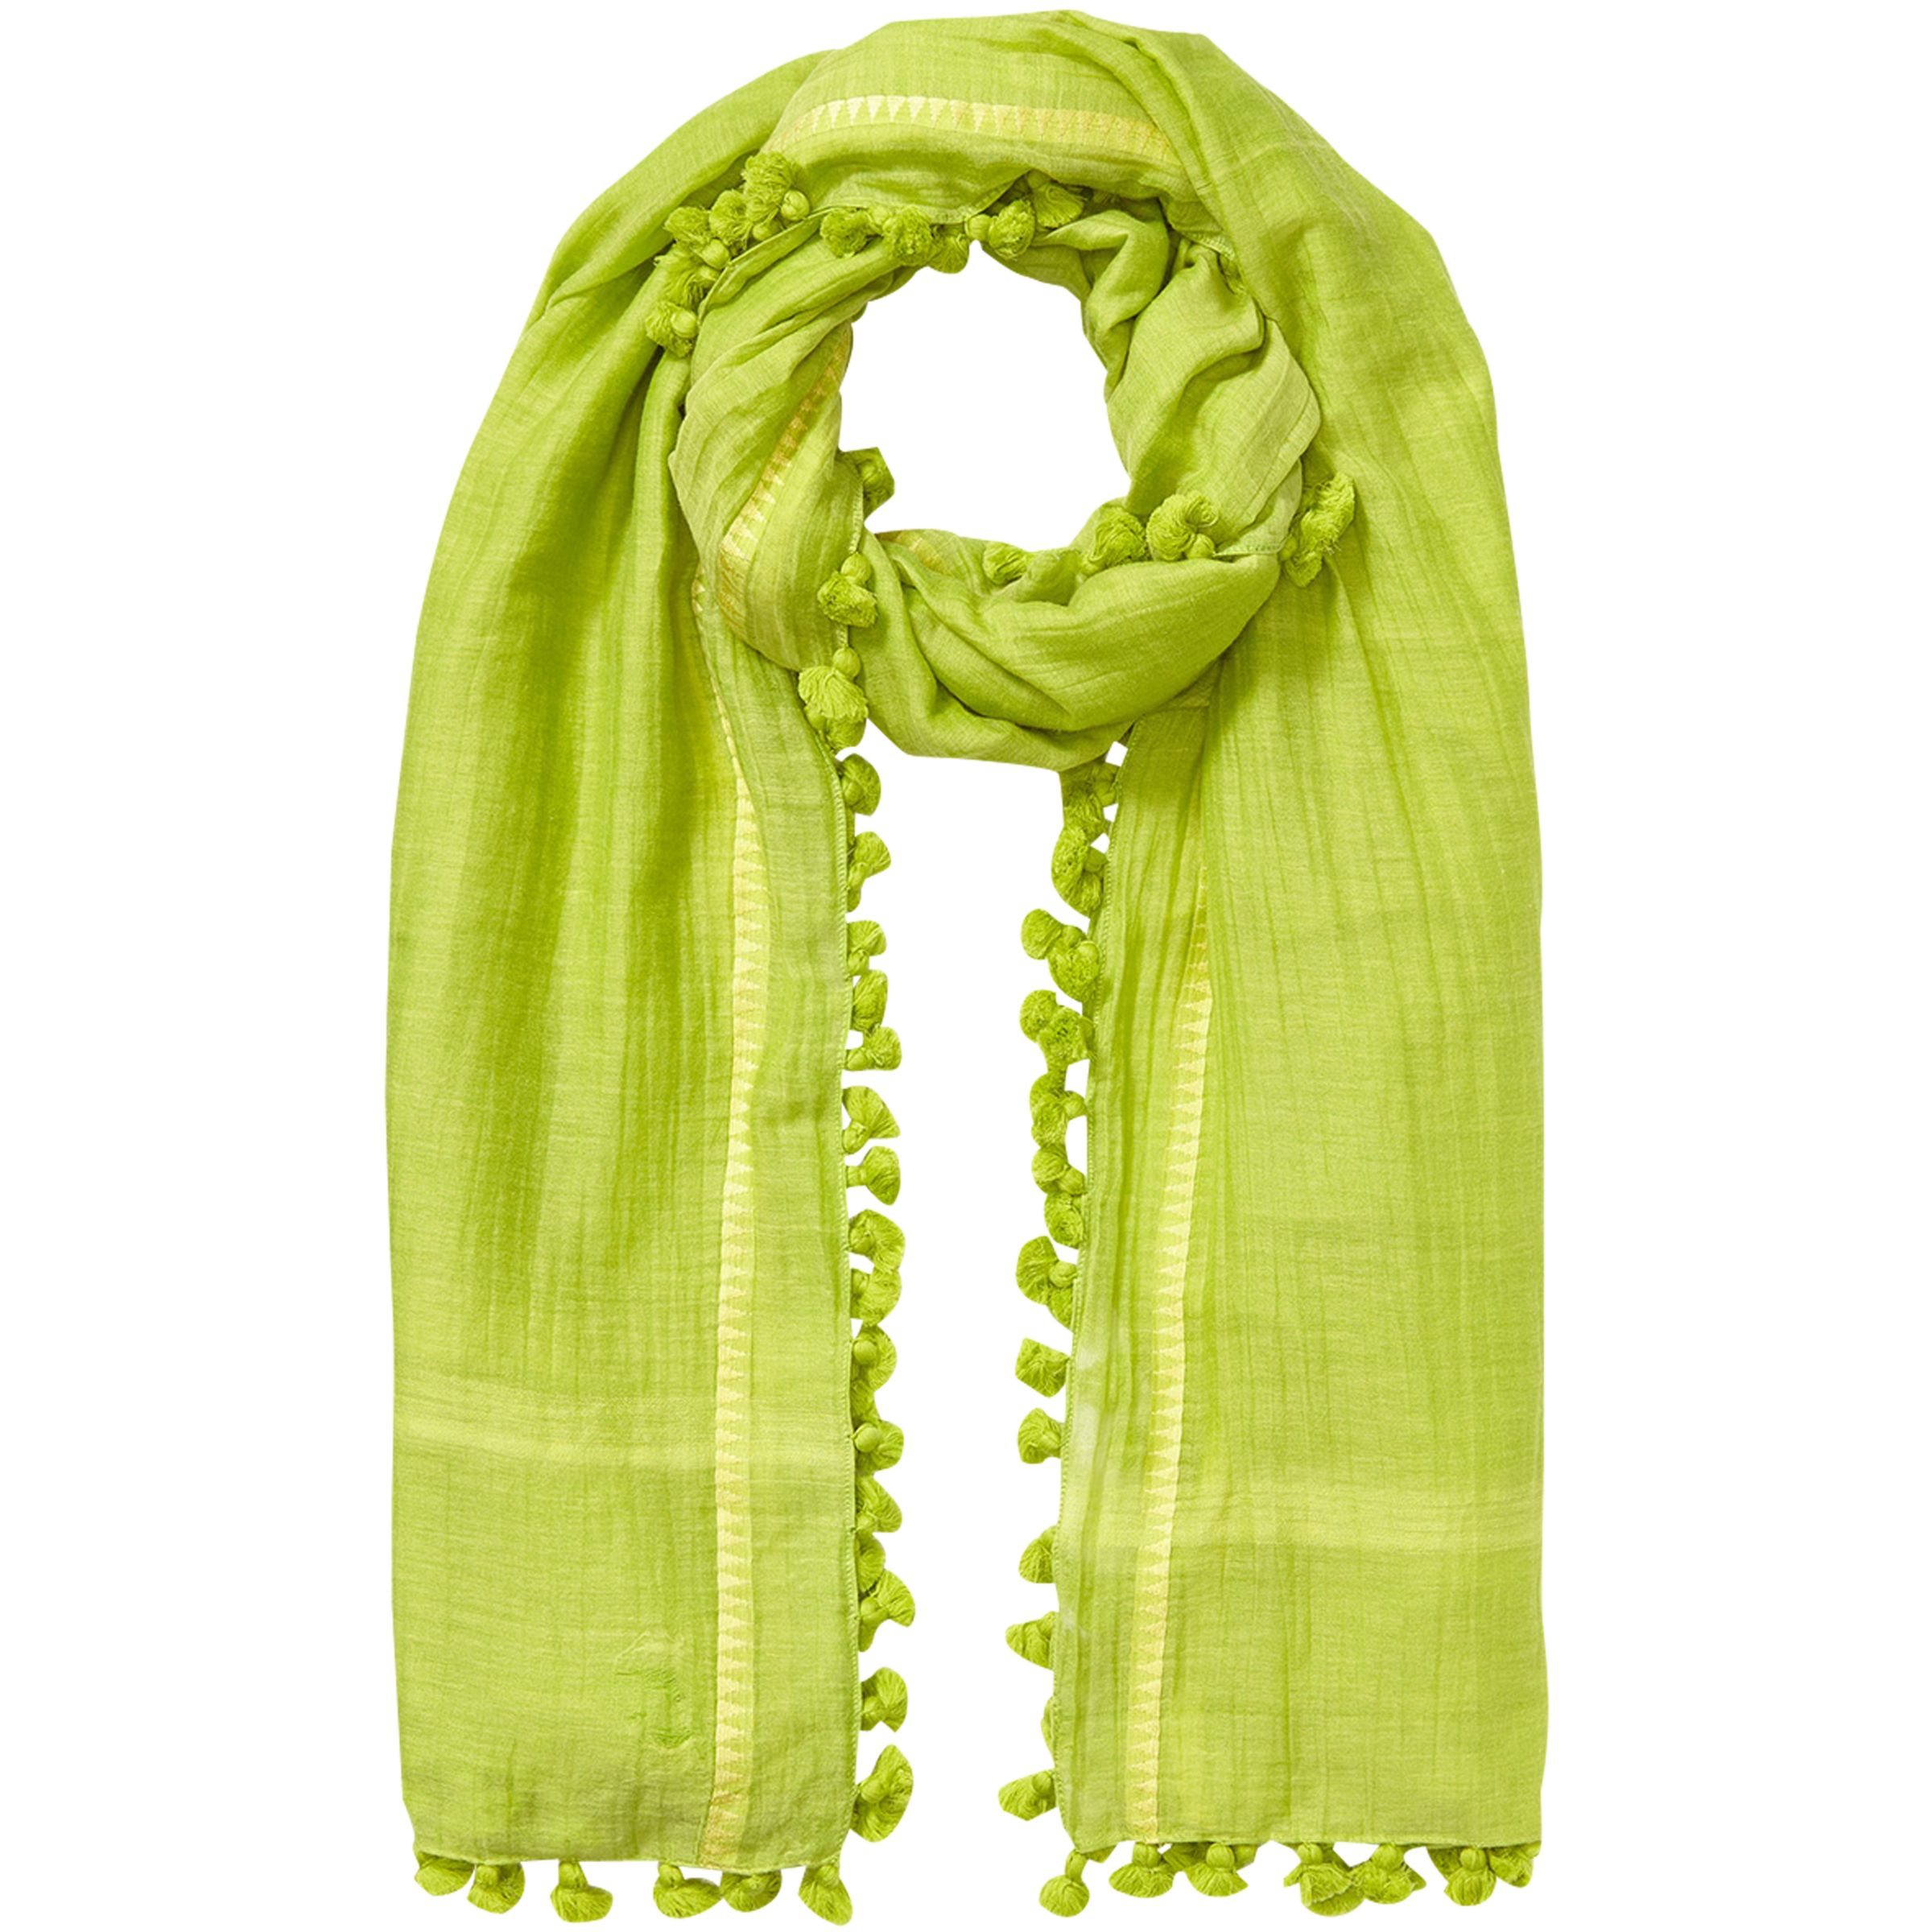 East East Silk Cotton Pom Pom Scarf, Kiwi